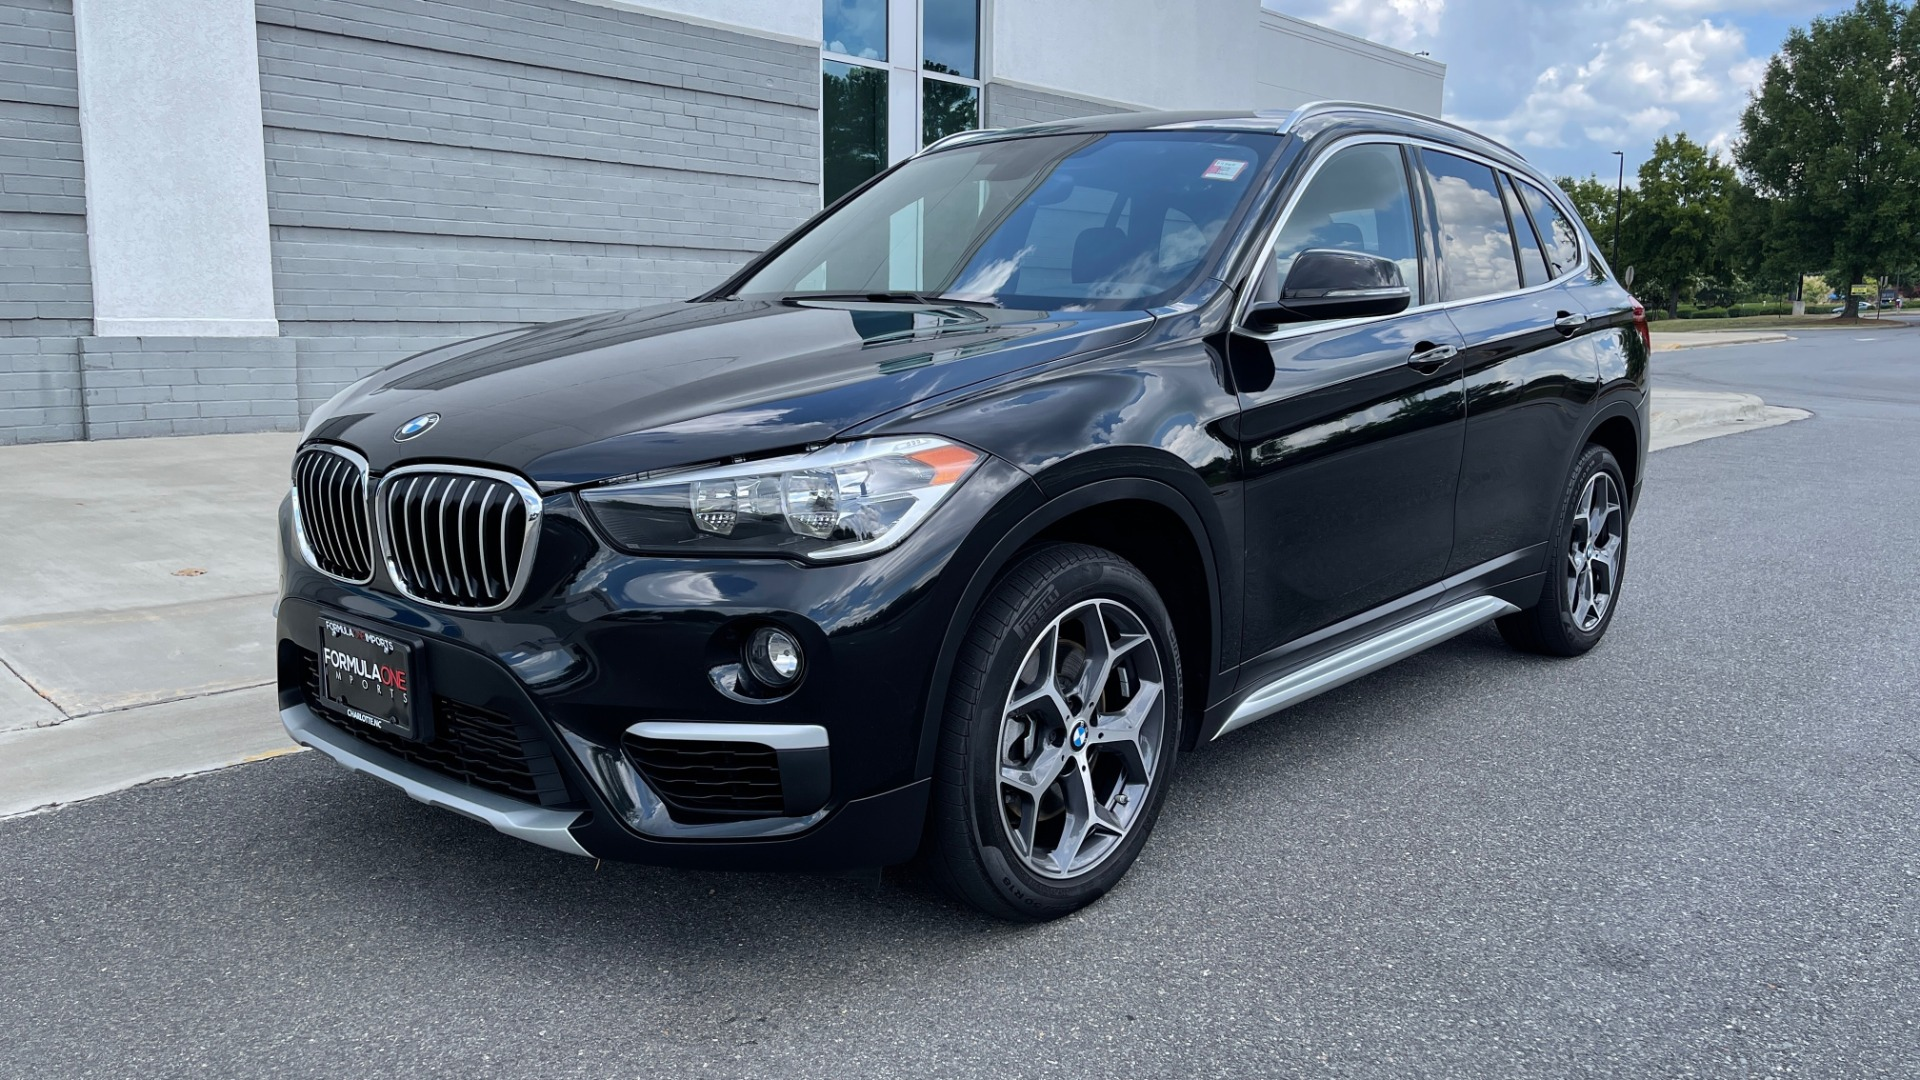 Used 2018 BMW X1 XDRIVE28I / NAV / CONV PKG / HTD STS / PANO-ROOF / REARVIEW for sale $29,995 at Formula Imports in Charlotte NC 28227 3